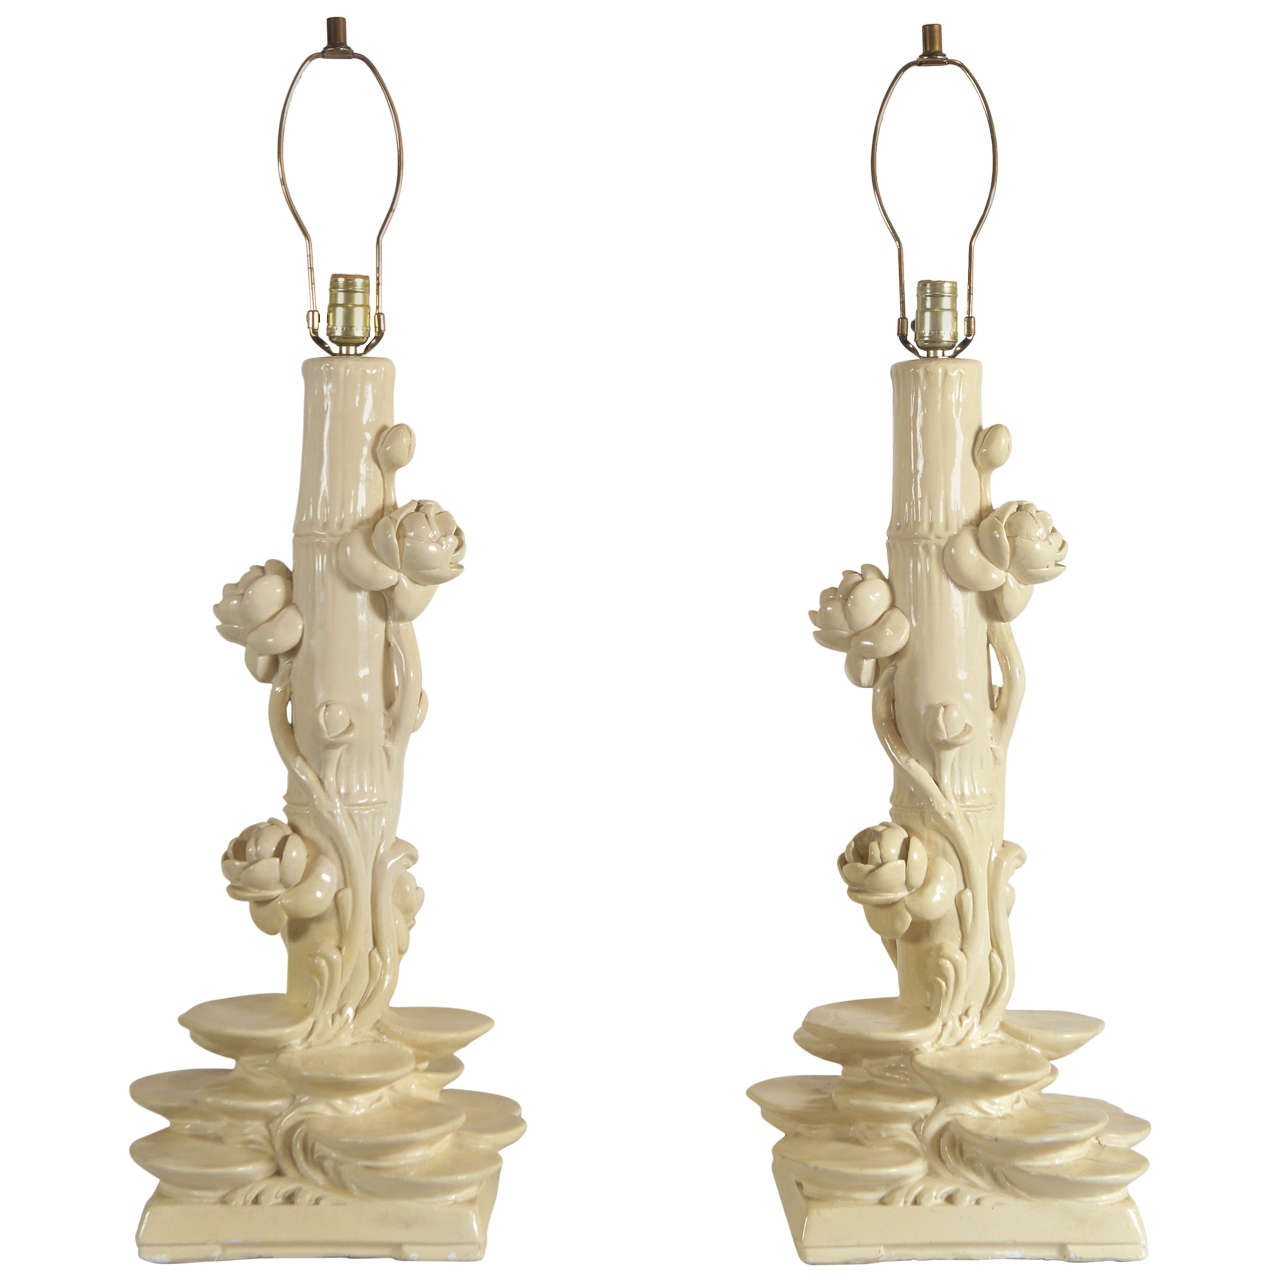 Pair of Serge Roche Plaster Lamps For Sale